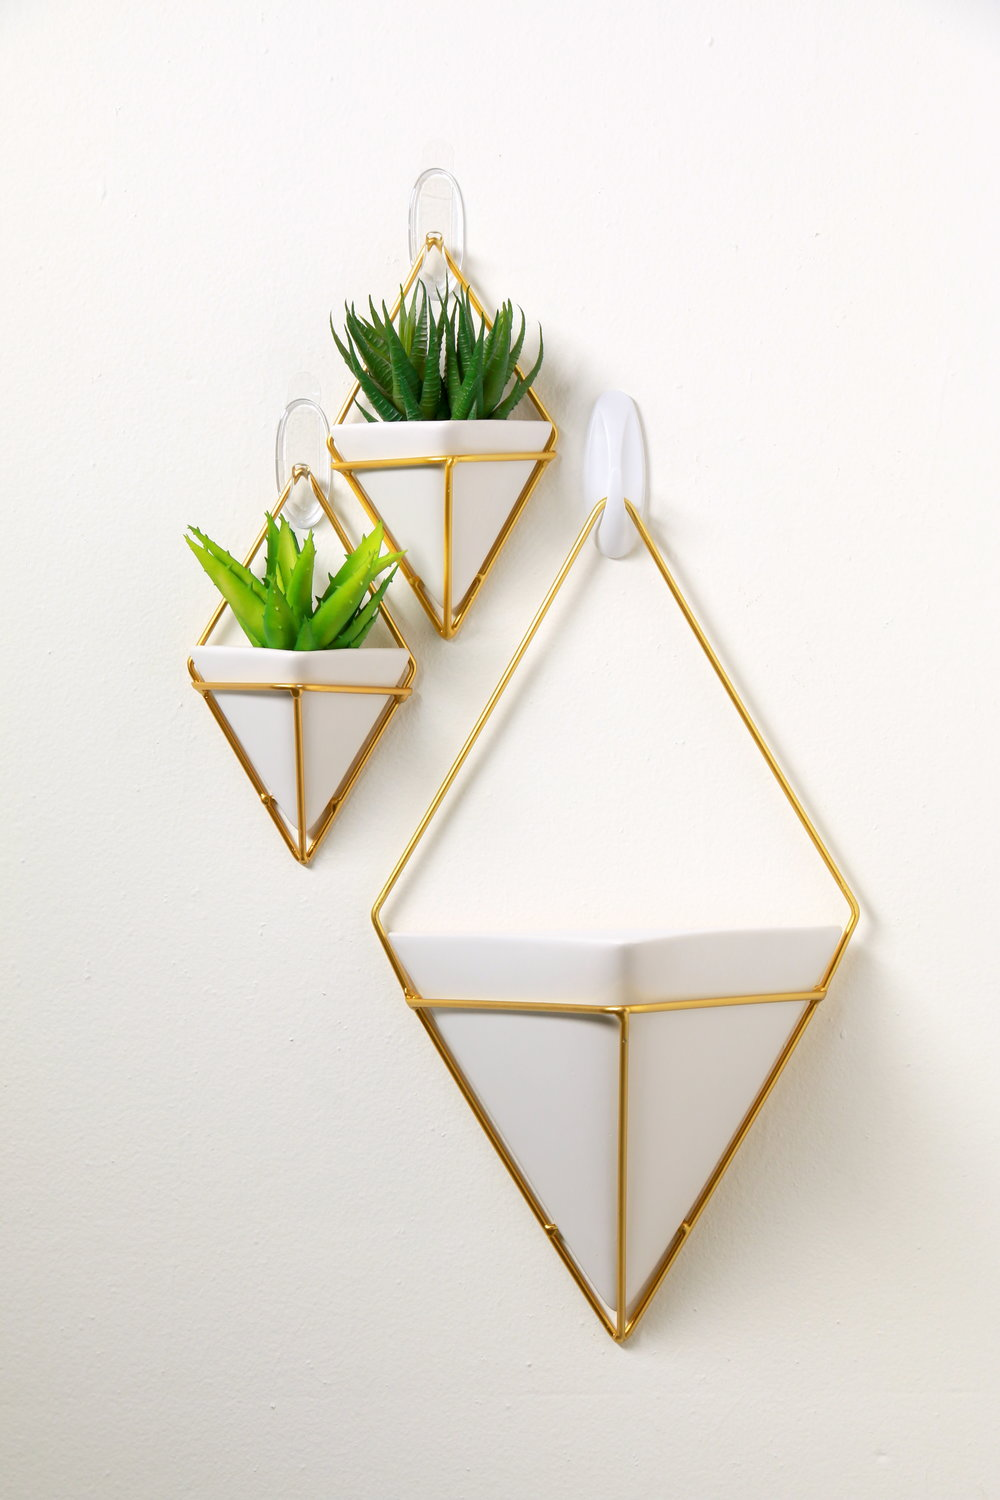 Decorative triangle shaped pot